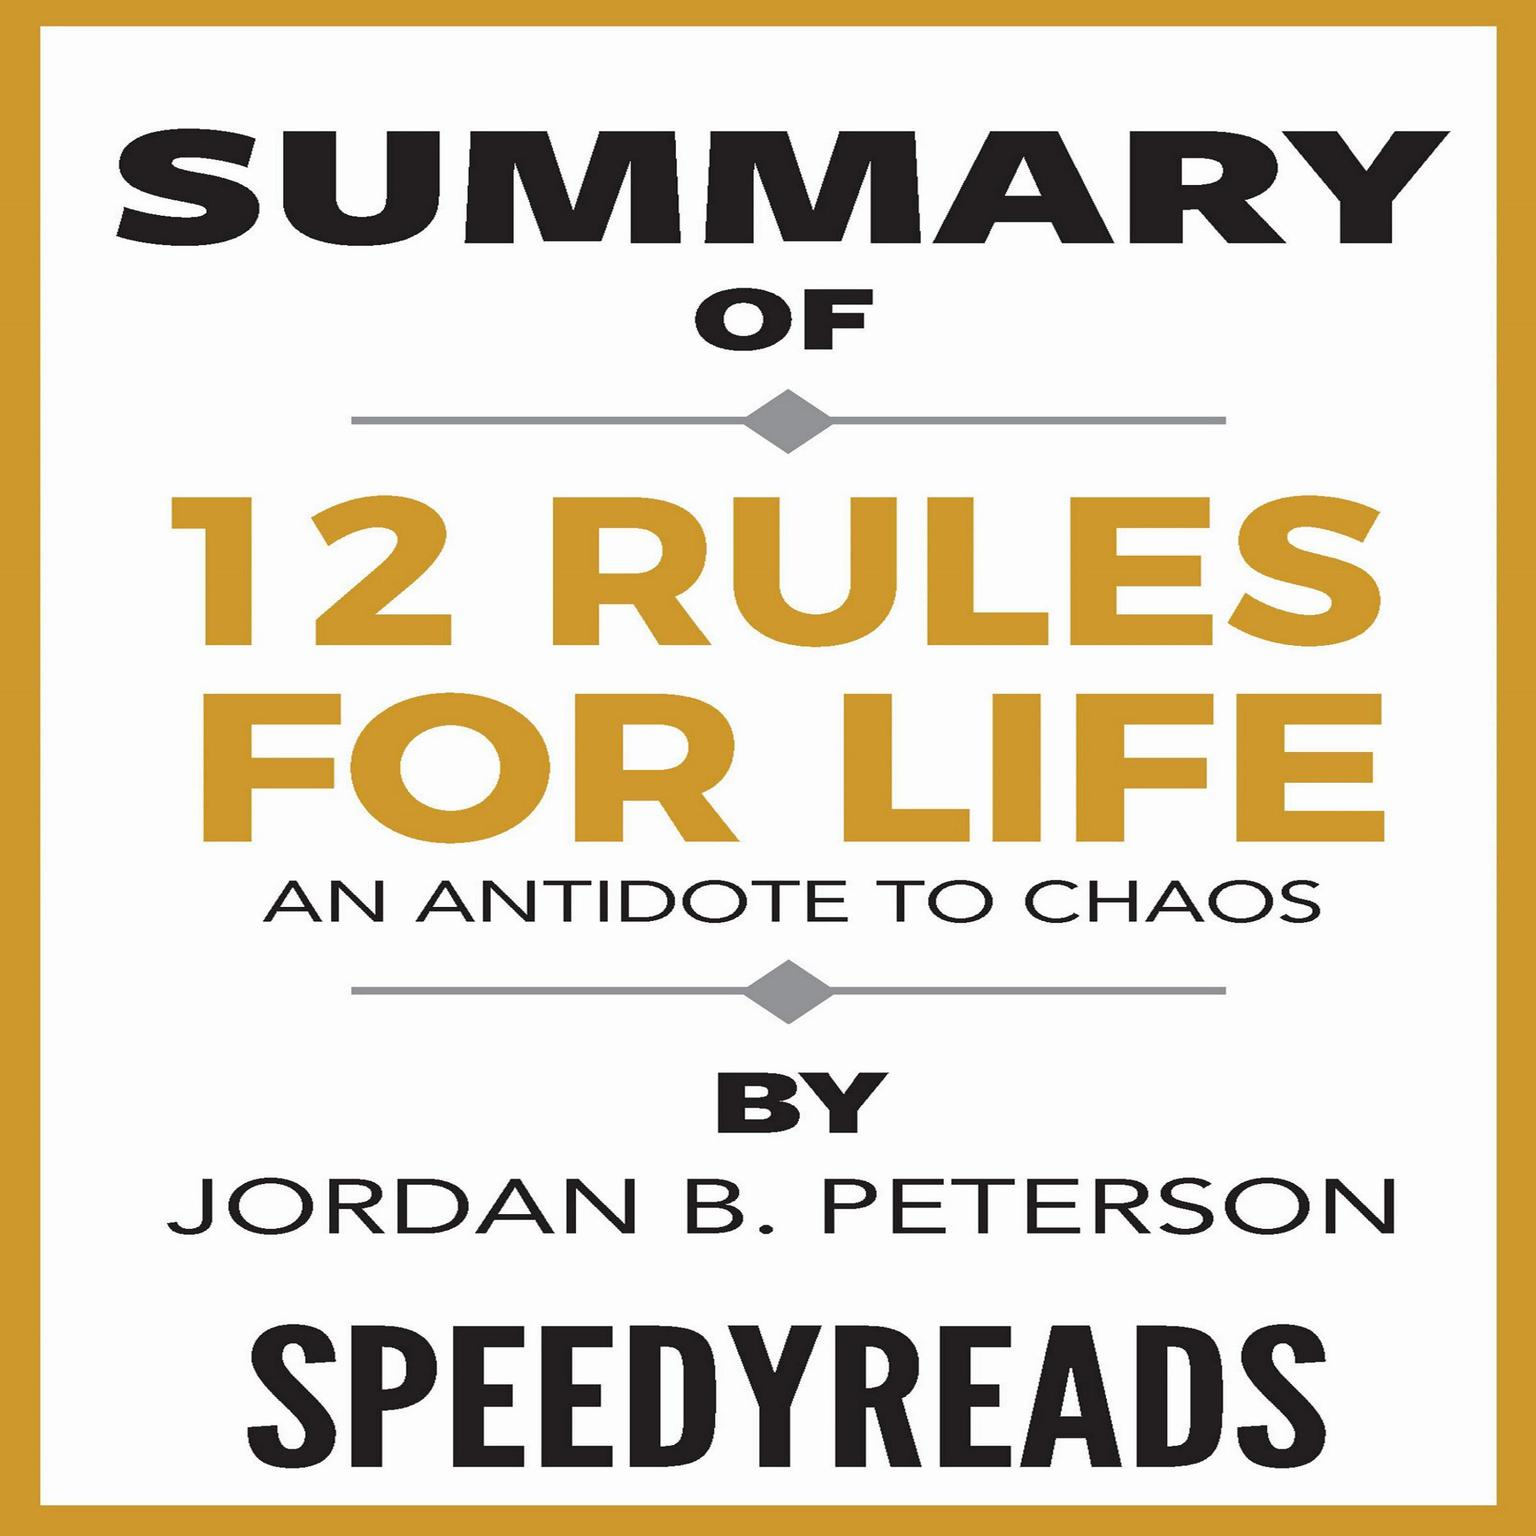 Printable Summary of 12 Rules for Life: An Antidote to Chaos by Jordan B. Peterson—Finish Entire Book in 15 Minutes Audiobook Cover Art